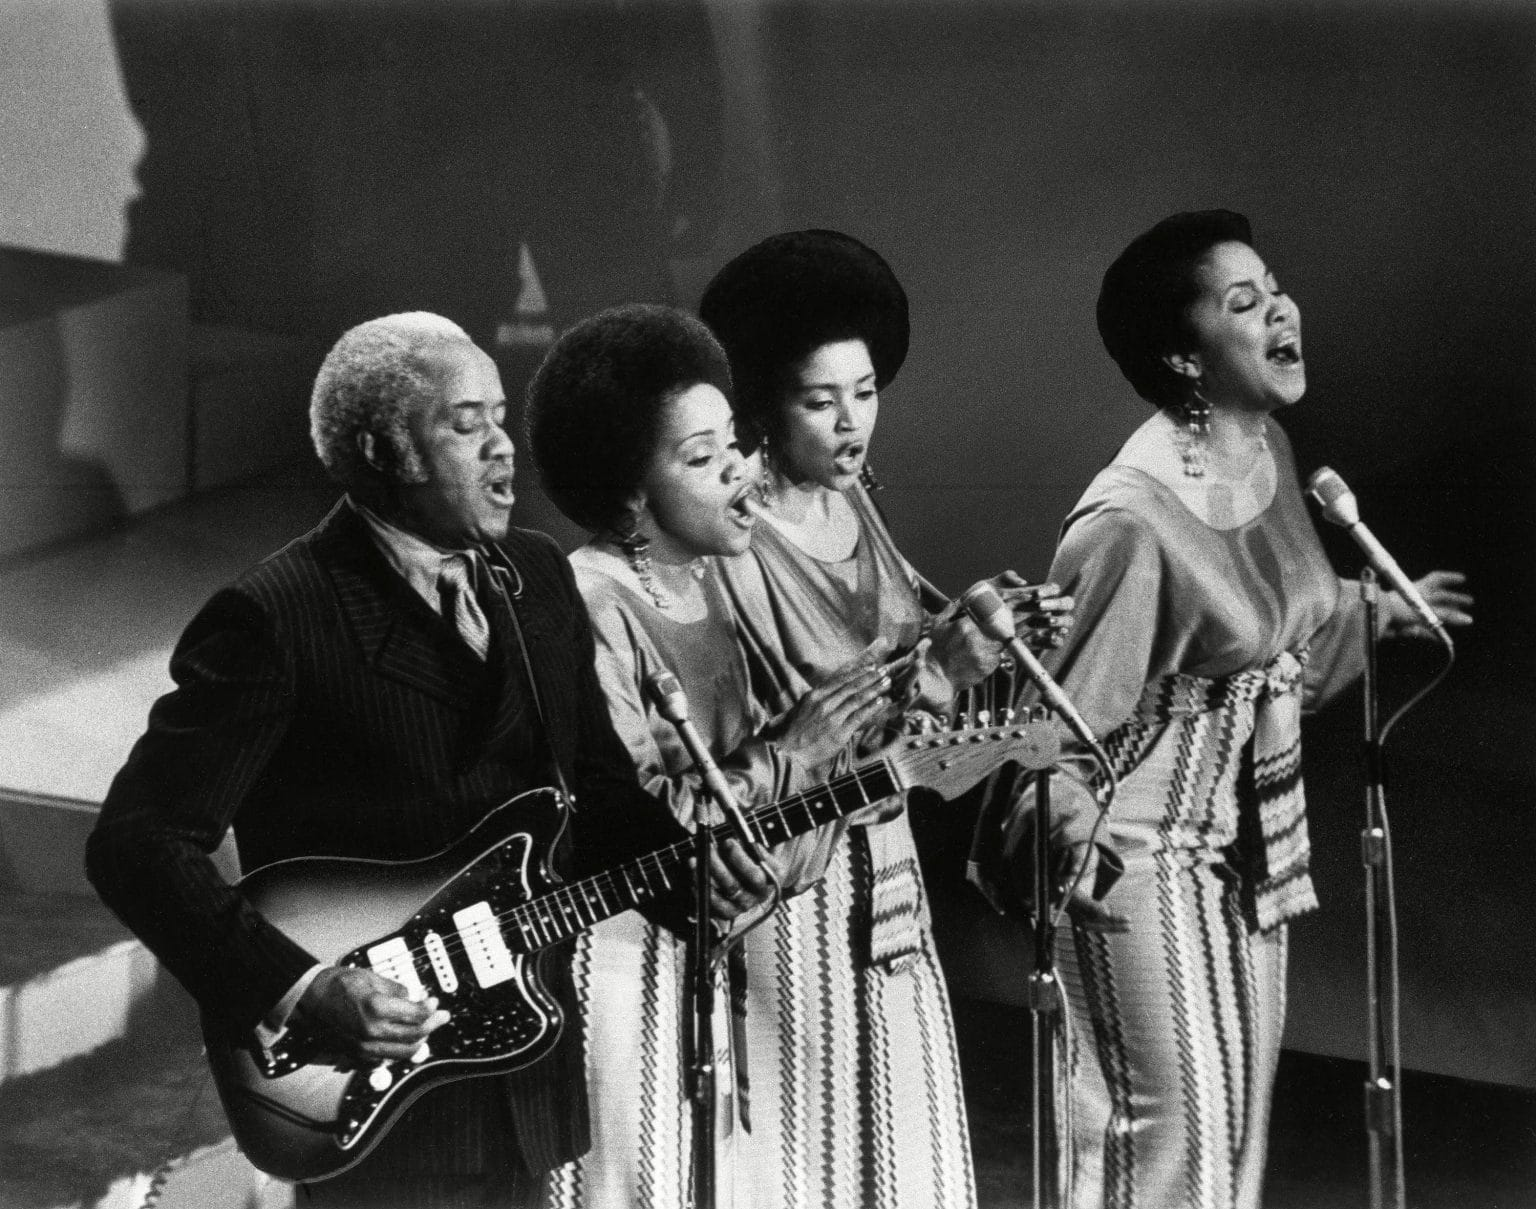 The Staples Singers in 1971: The Year That Music Changed Everything